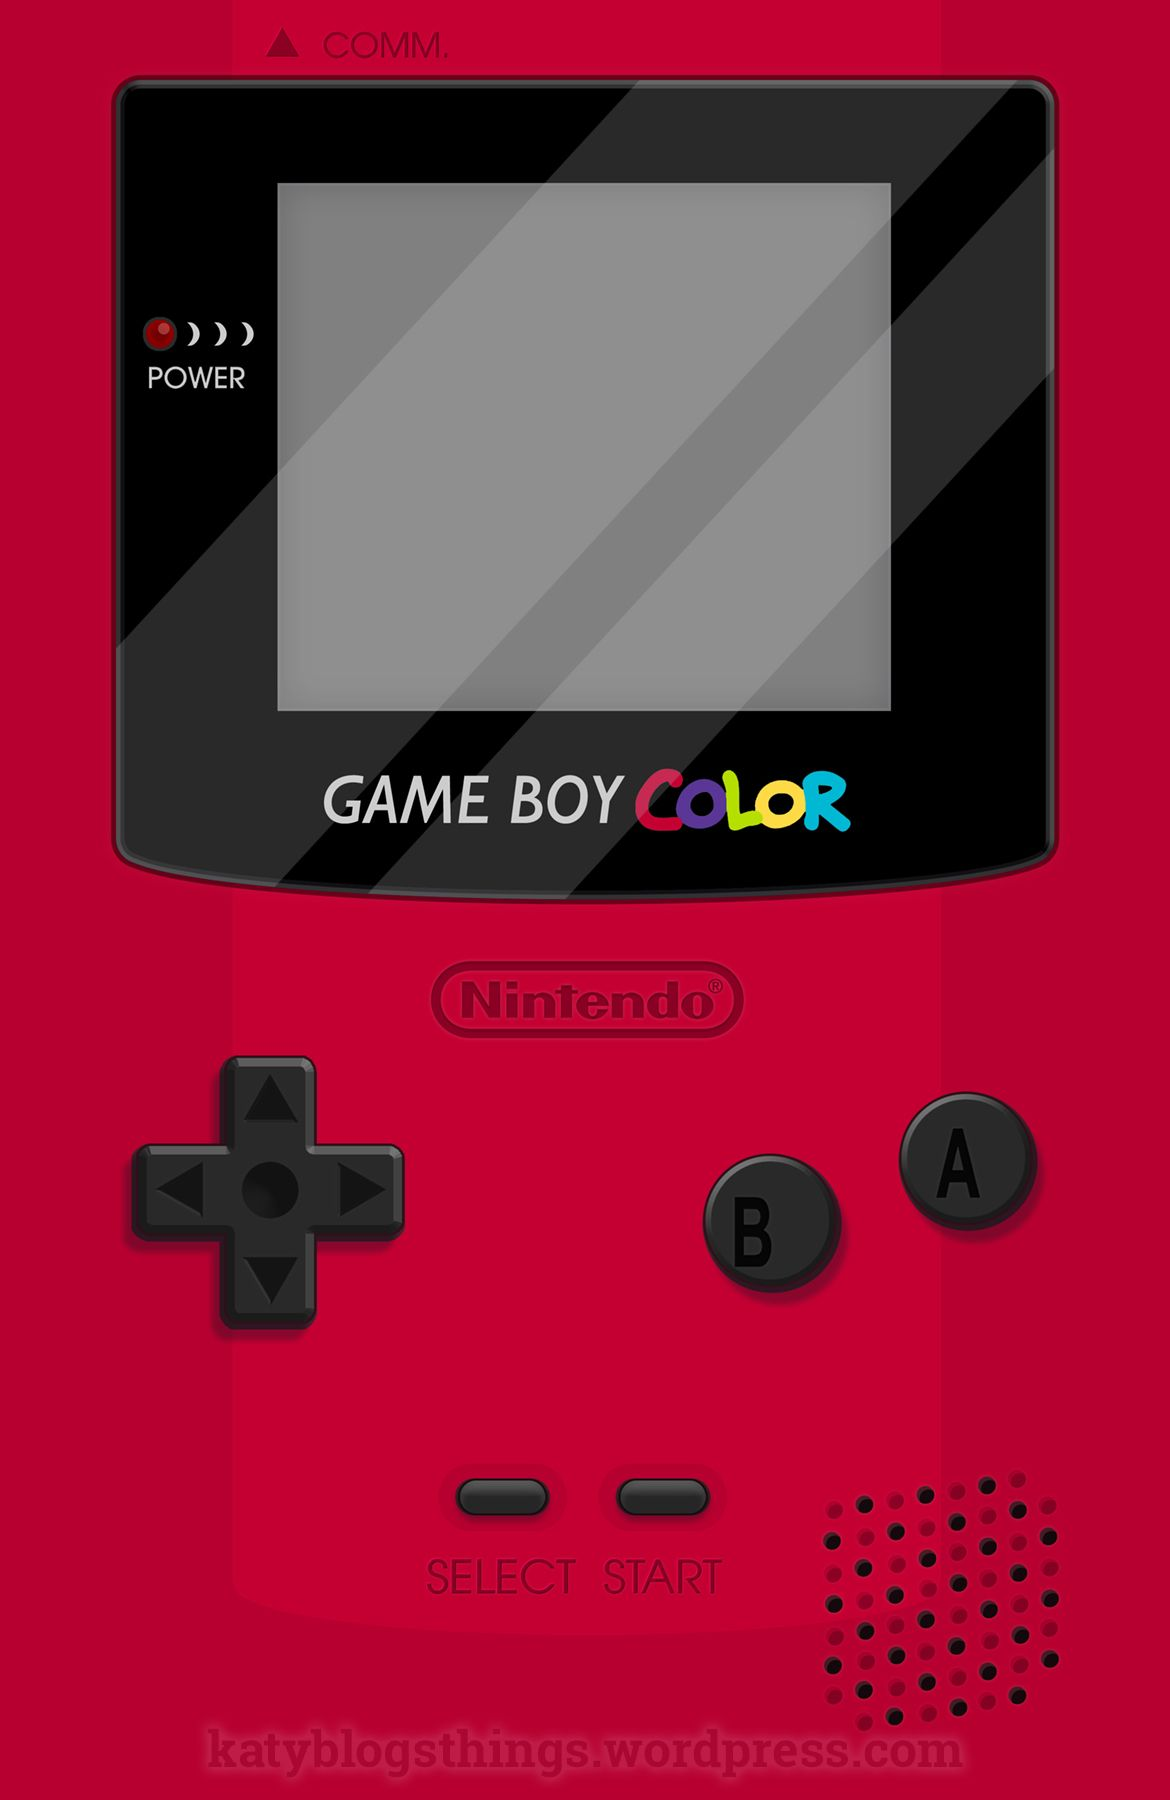 Gameboy Color 2 0 Red Iphone 12 Soft By Katymakesthings Gameboy Yellow Iphone Case Minecraft Banner Designs